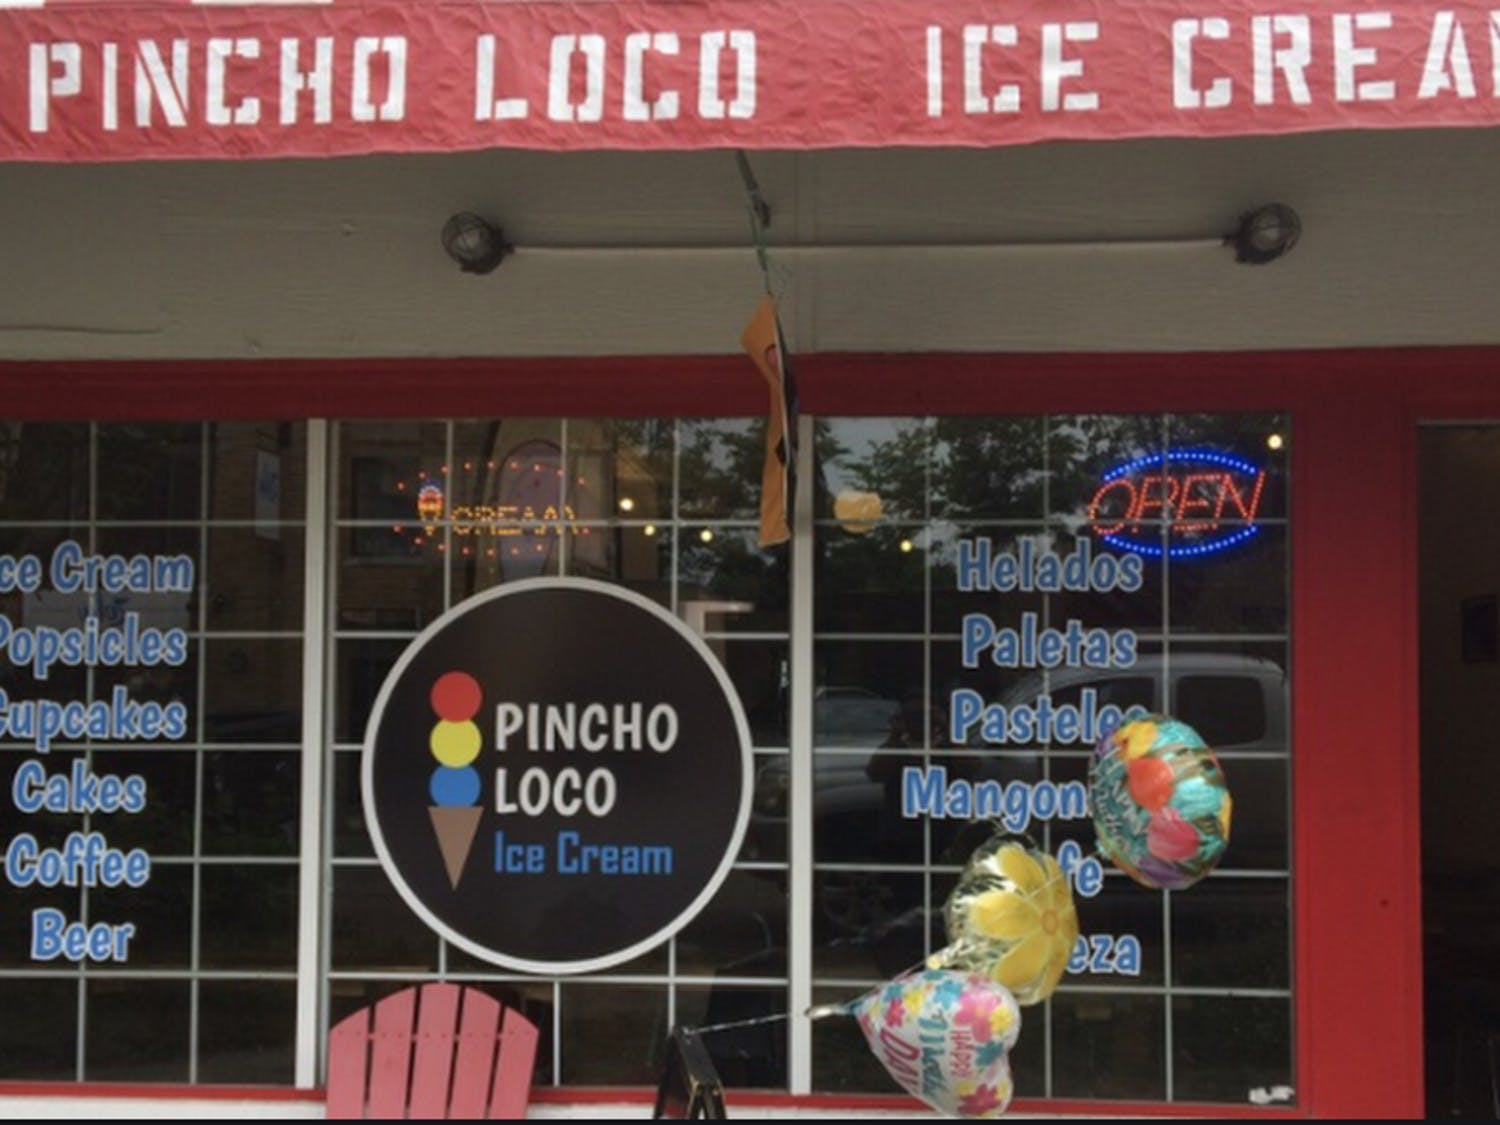 Pincho Loco supplies more than just sweet treats for Duke students and Durham residents: it is a cornerstone of the community.